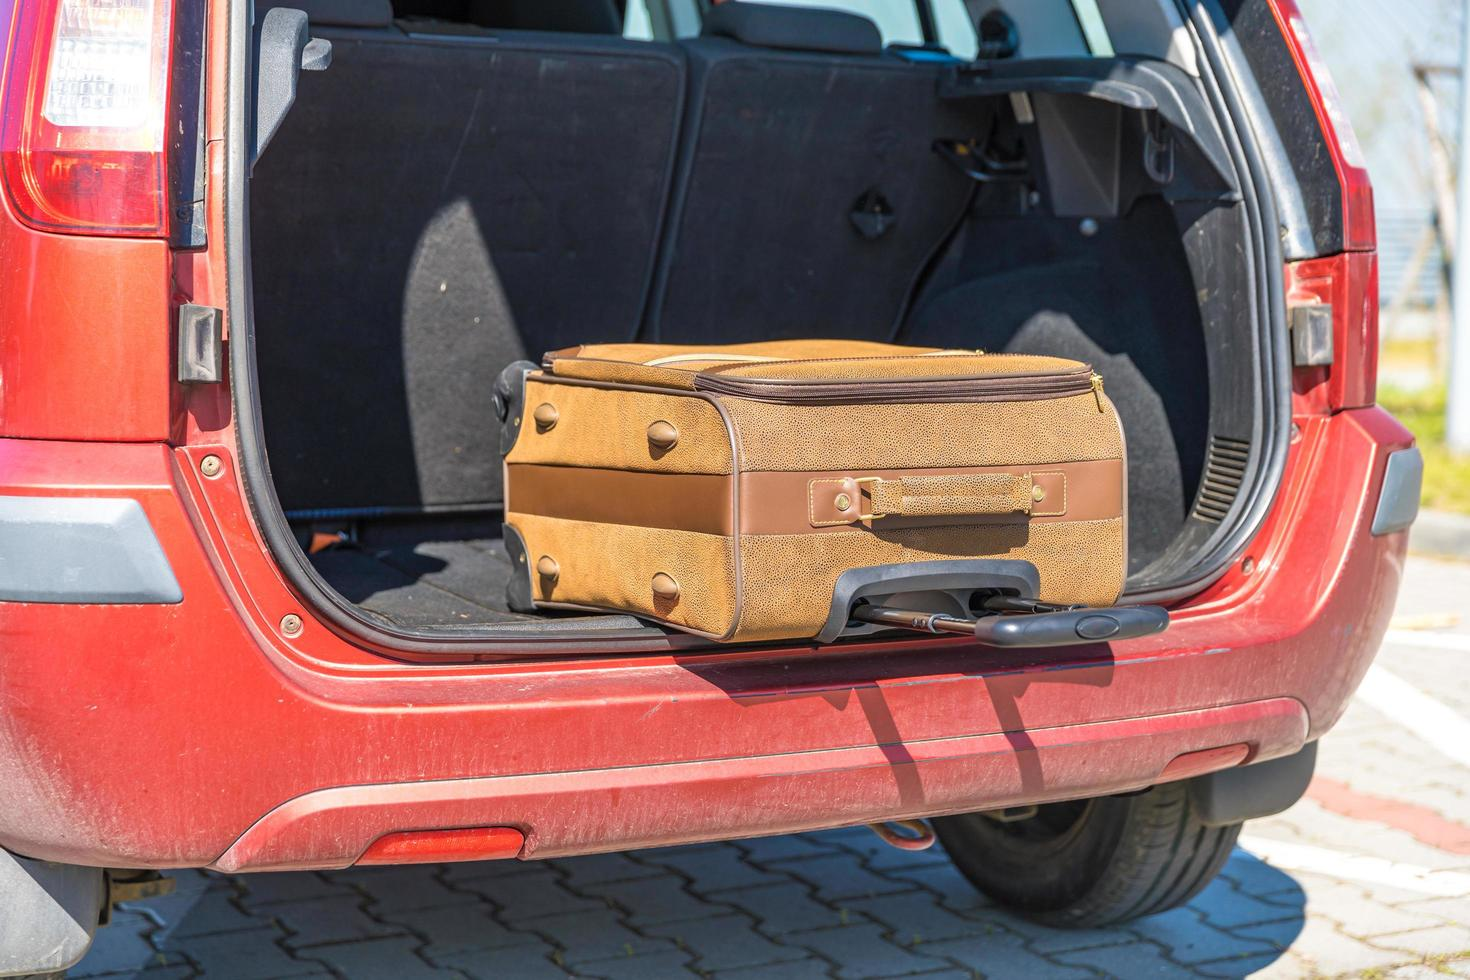 Luggage in the back of a car photo